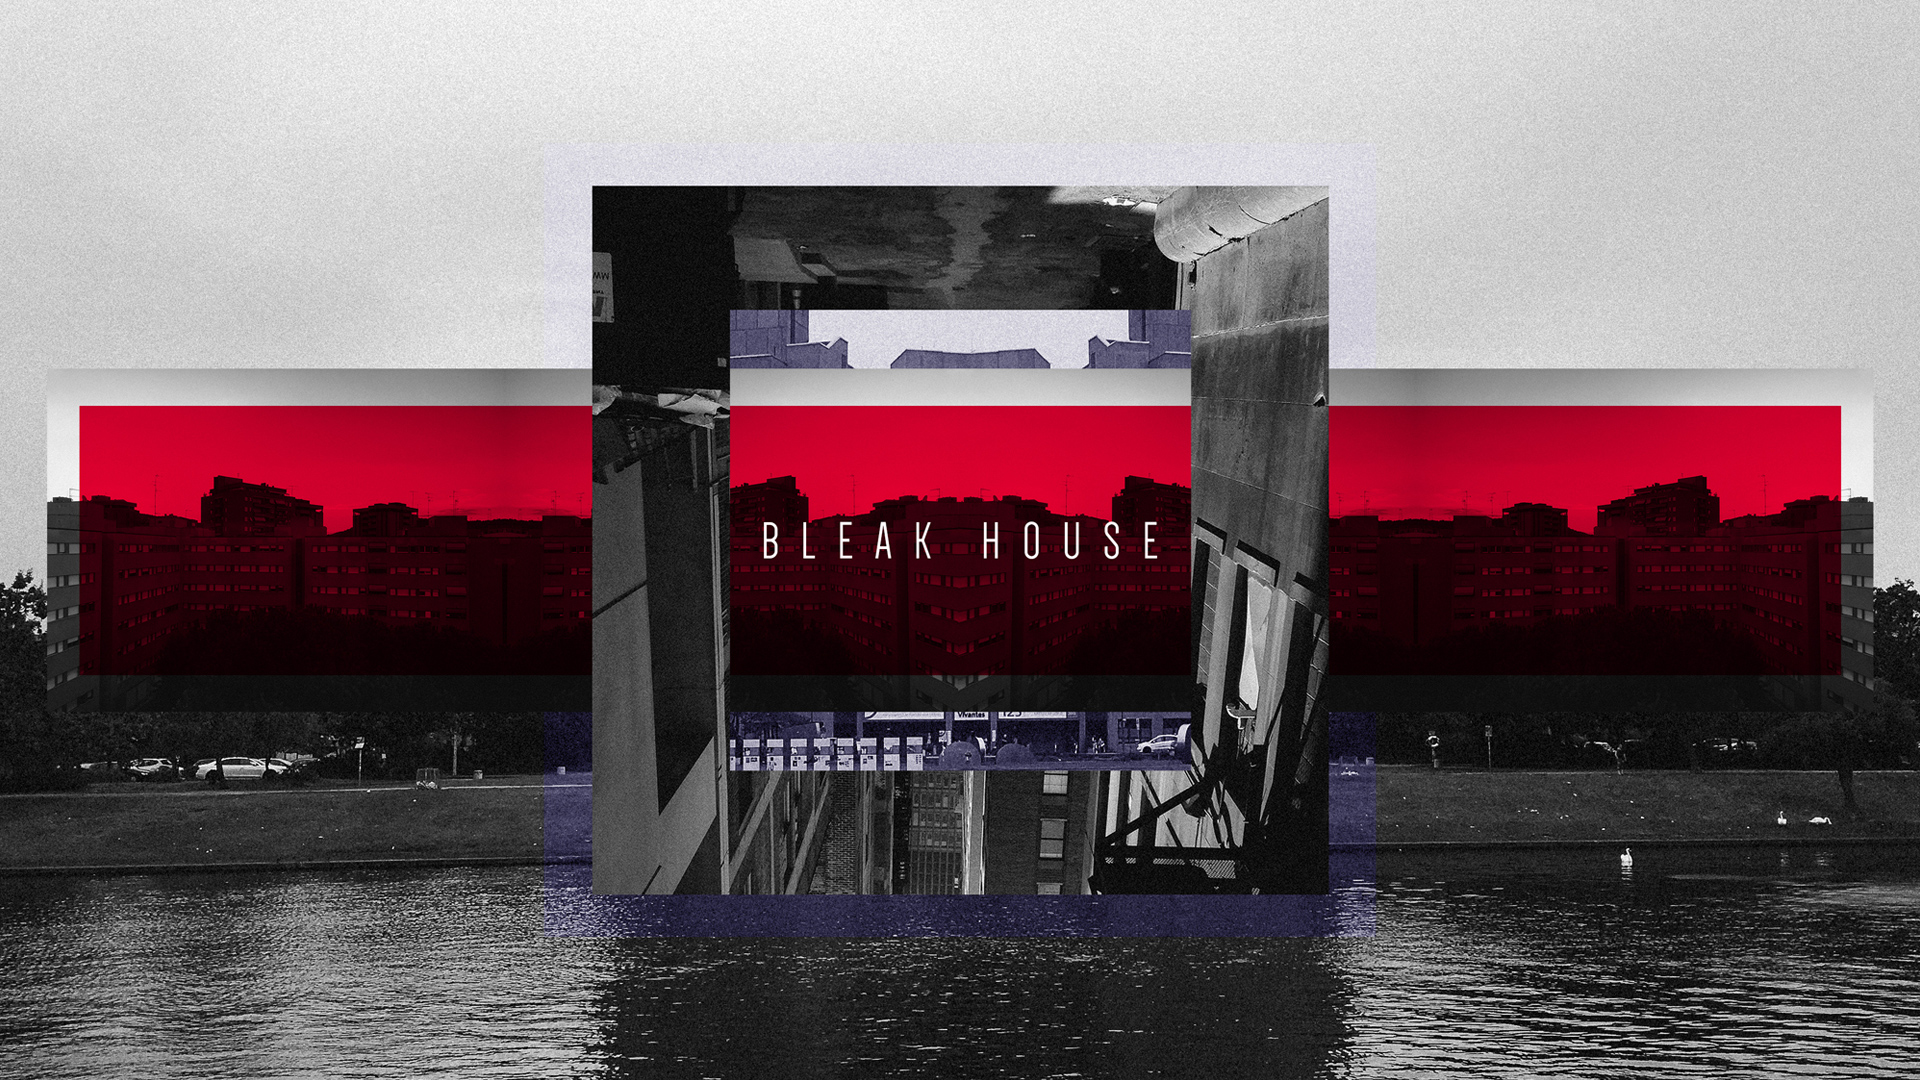 BleakHouse_Artwork_TH